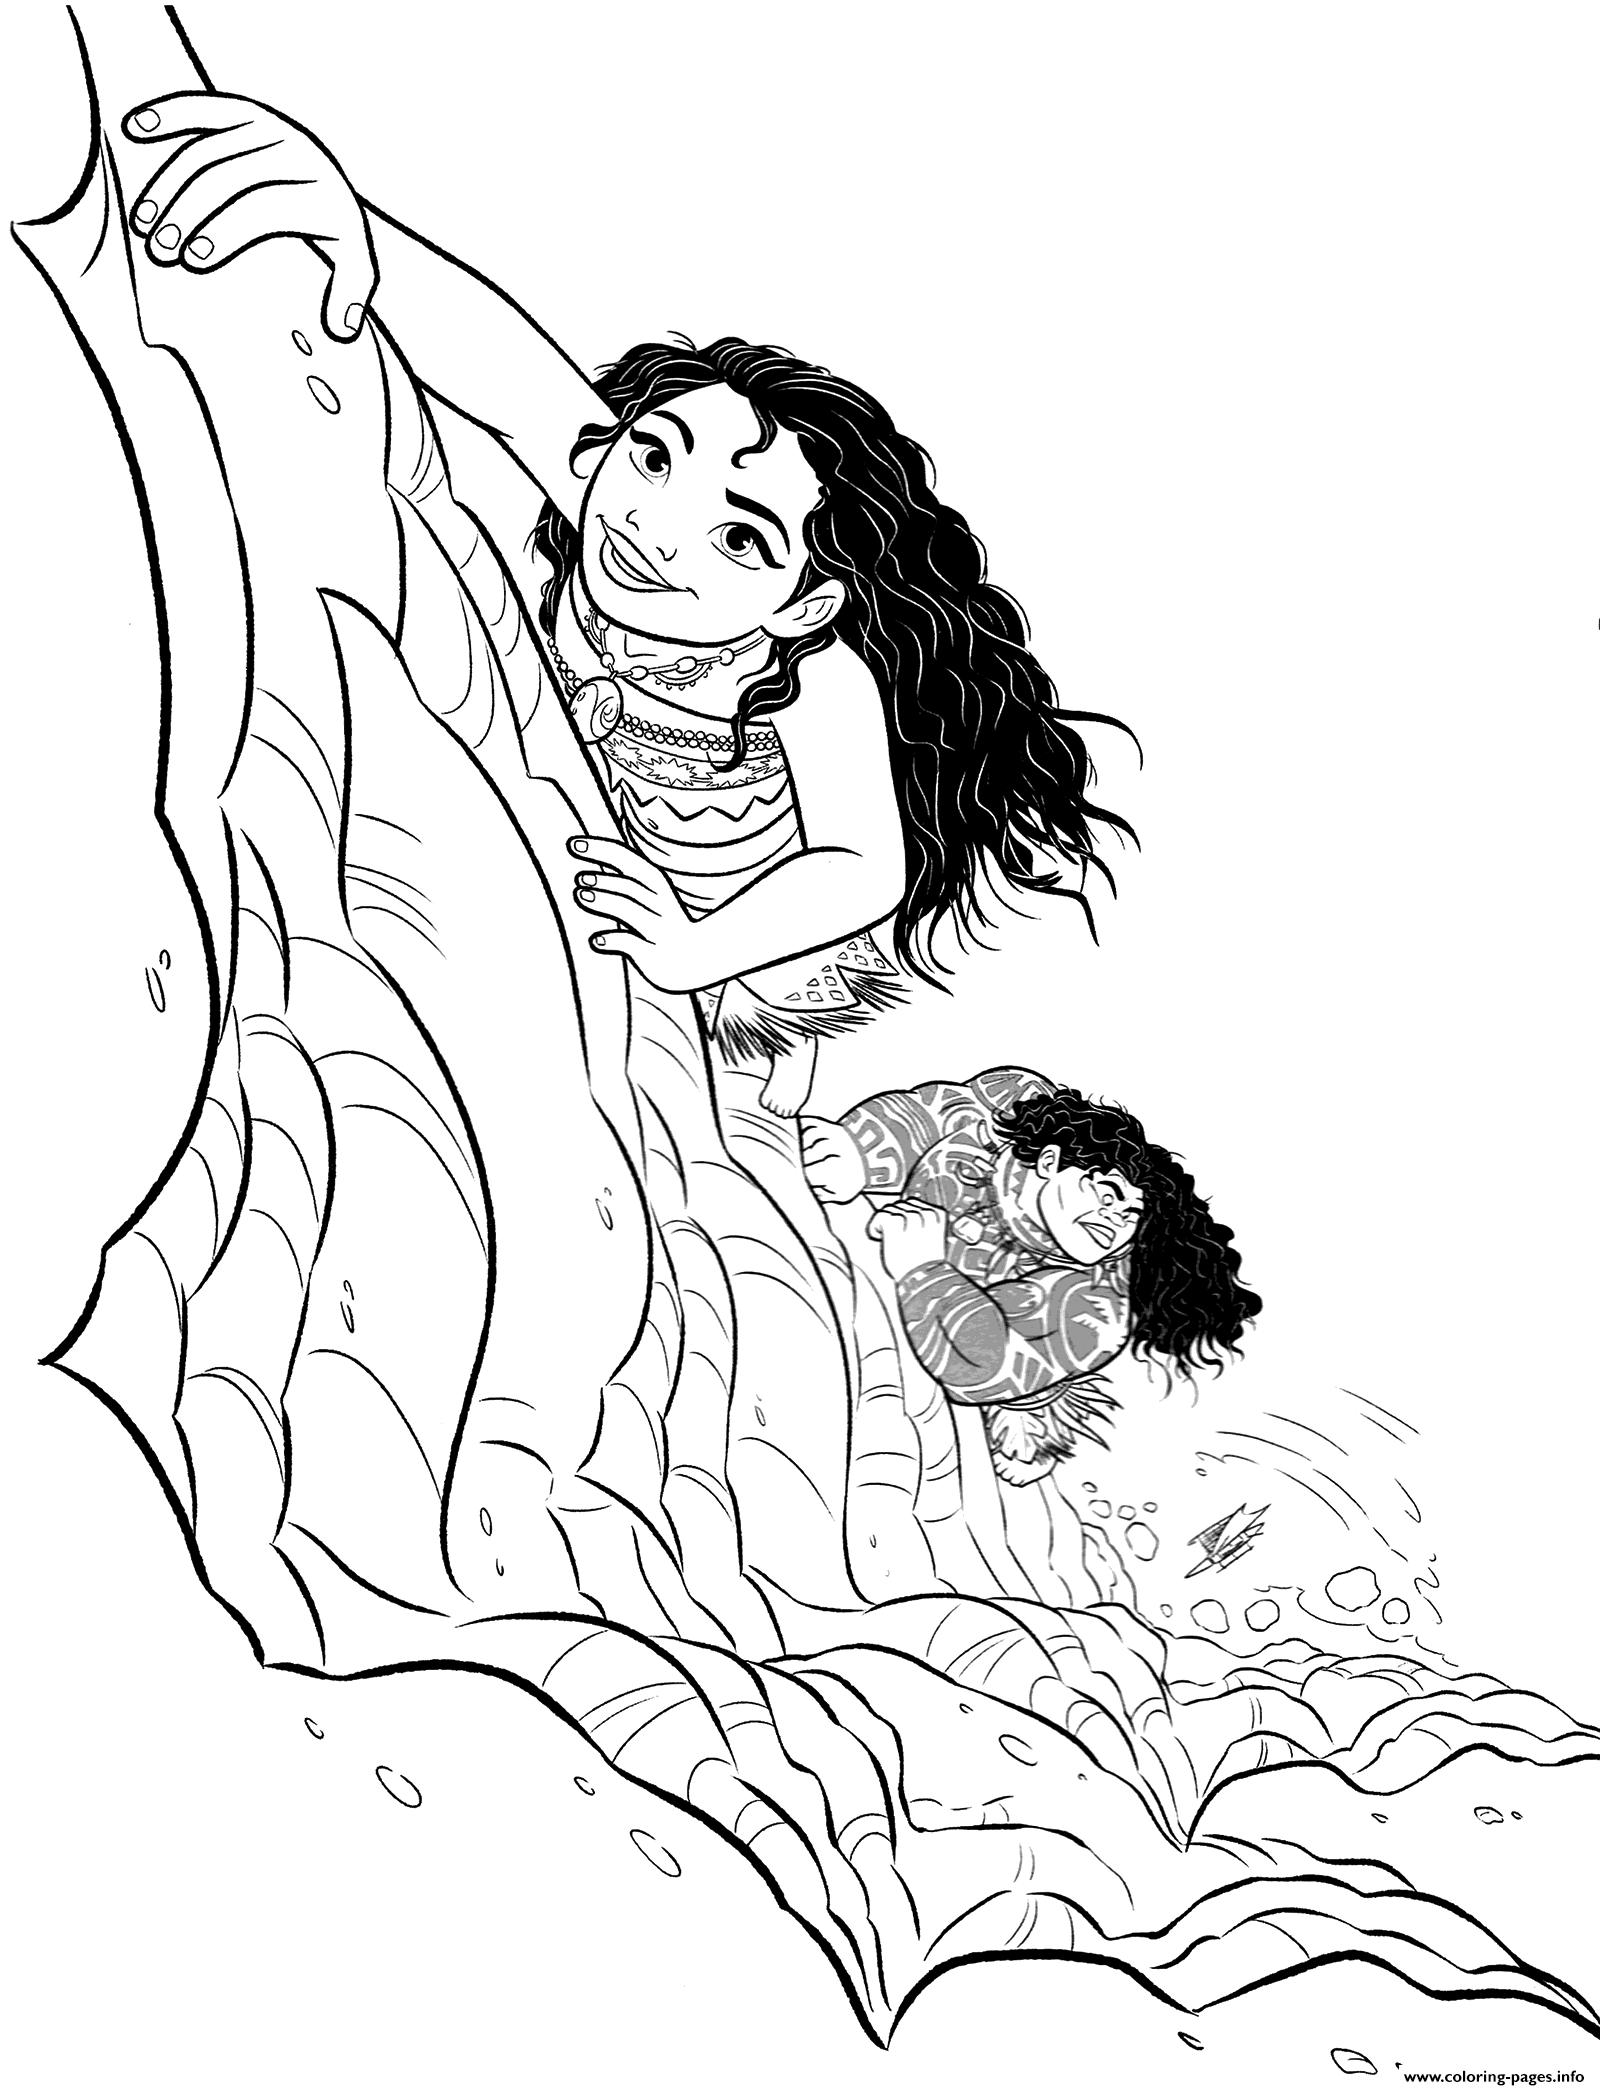 print moana coloring pages - moana and maui coloring pages printable